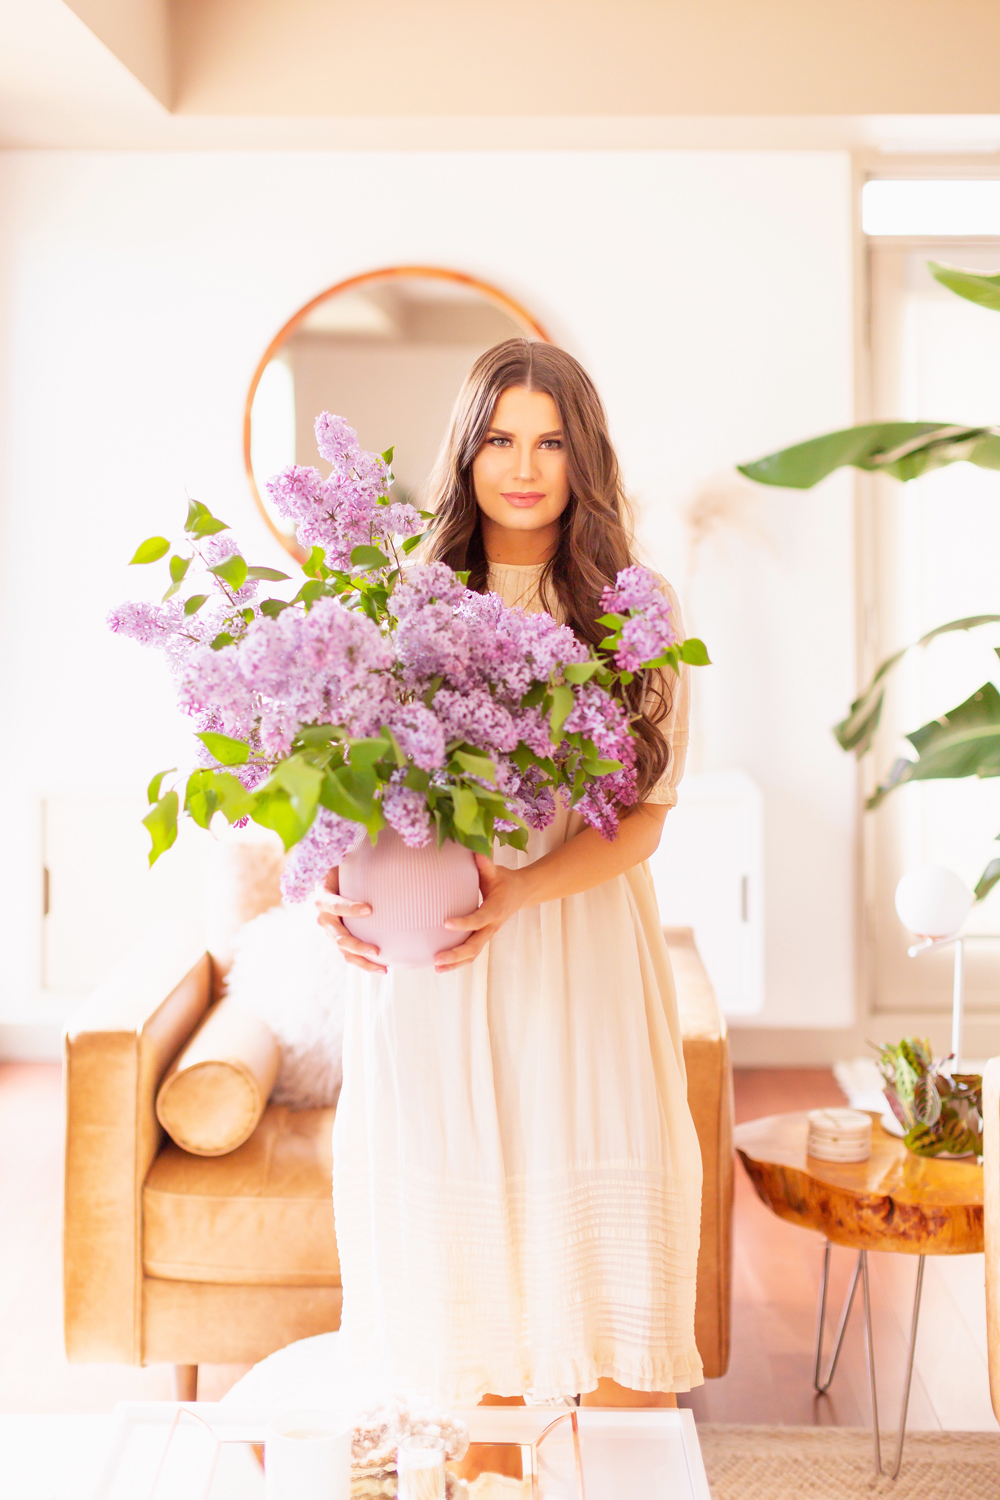 How to Create a Lilac Bouquet | Brunette woman in a flowy linen dress holding an oversized Lilac Flower Arrangement | How to Forage Lilacs | How to Prolong Lilac Vase Life | How to Arrange Lilacs | Fresh Lilac Flower Bouquet | Extremely Pretty Lilac Arrangement | Purple Lilac Arrangement | How to Cut Lilacs from a tree or bush | Calgary Creative Lifestyle Blogger // JustineCelina.com